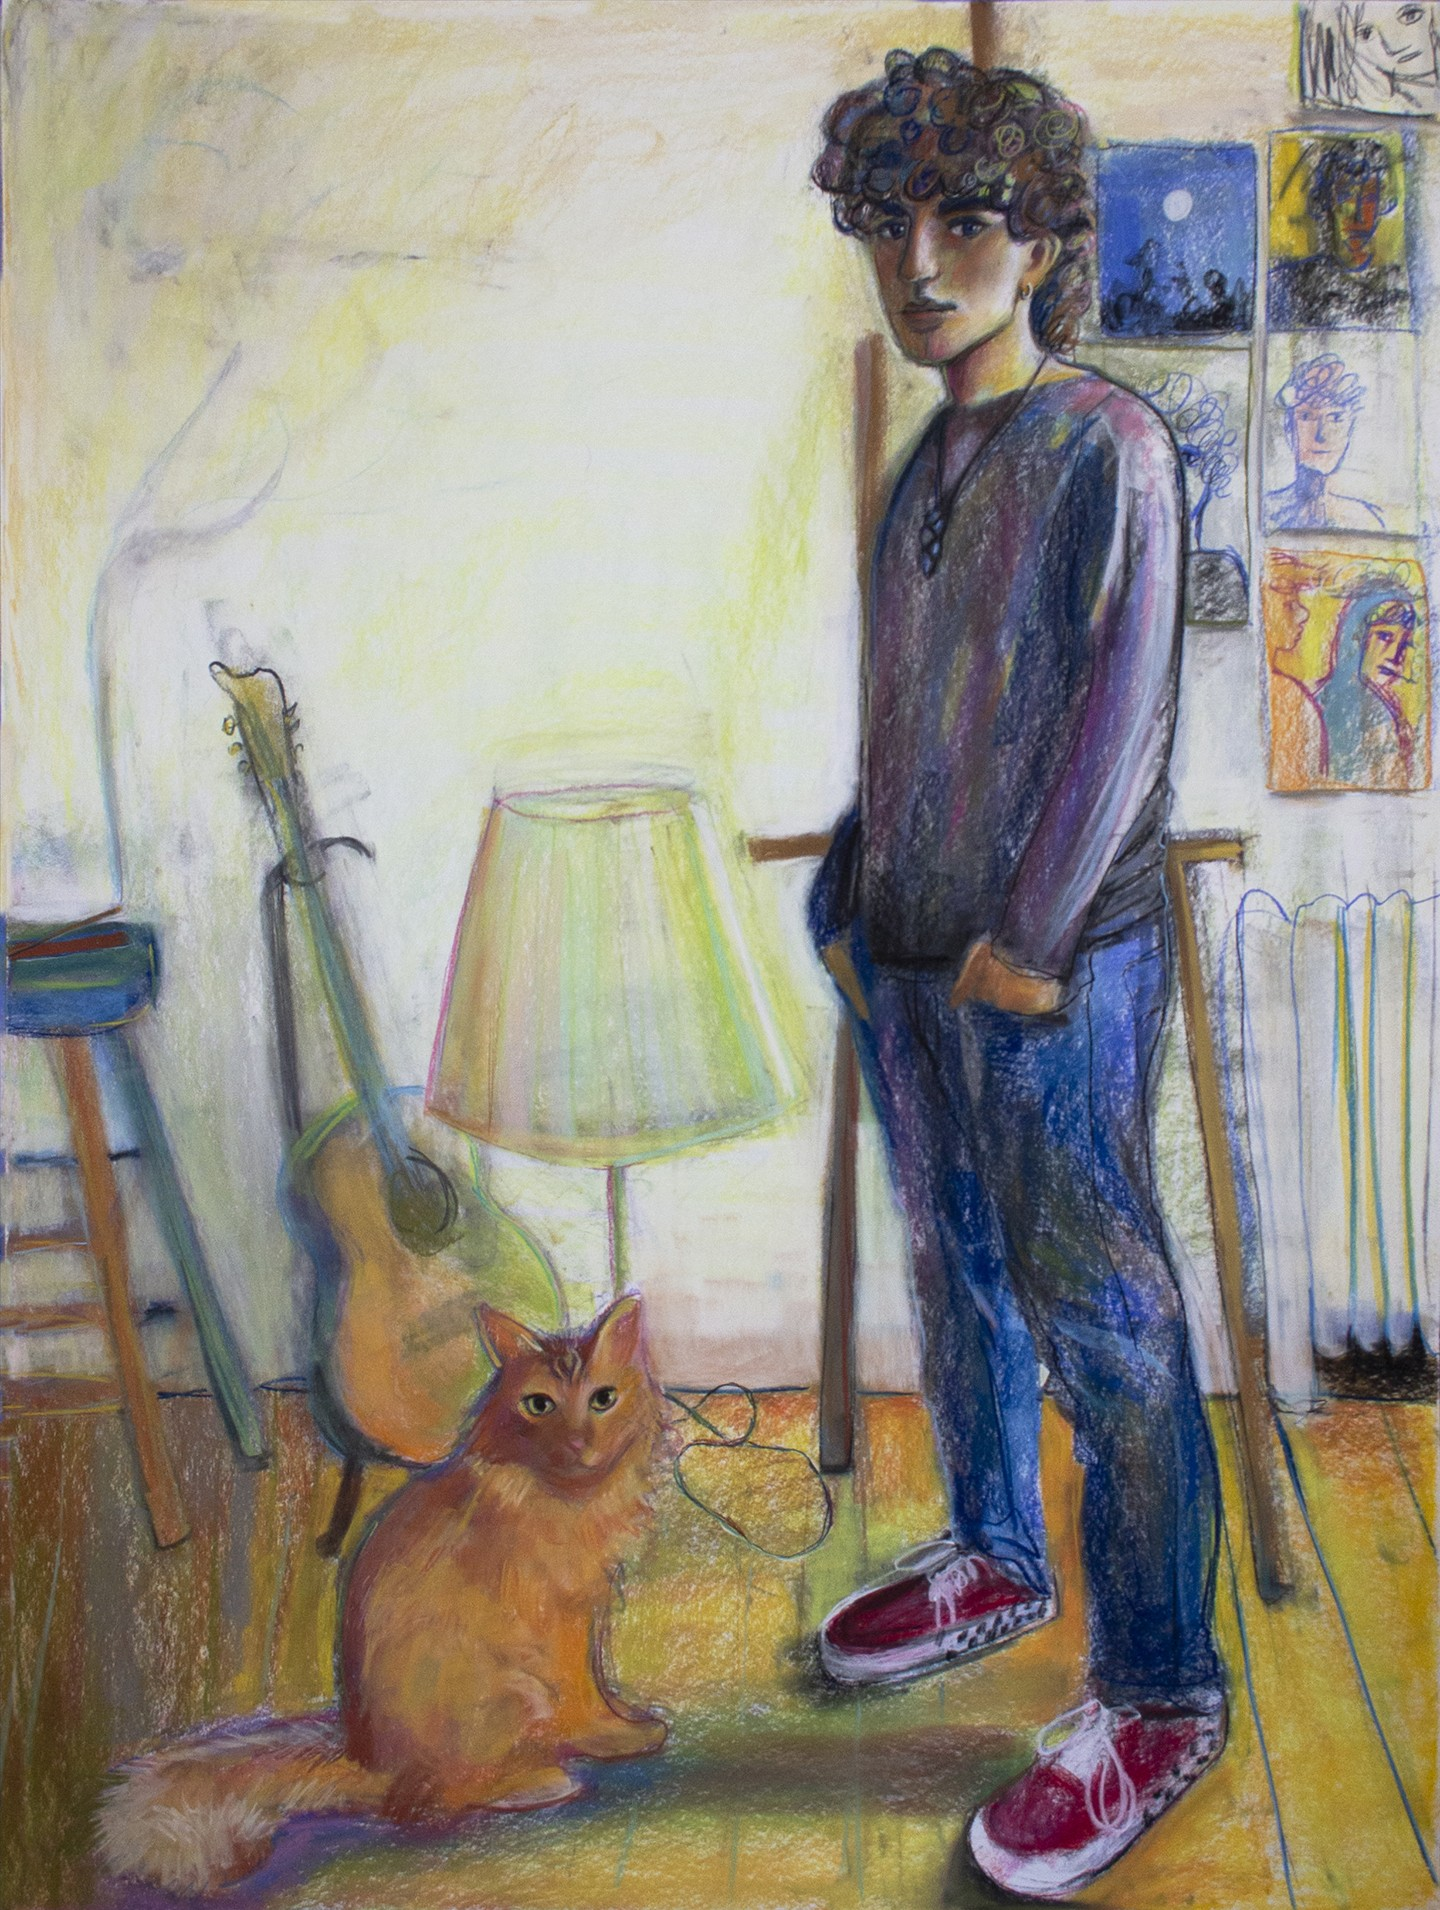 A portrait of a figure and a cat in an interior space, both with their gaze at the viewer. An array of objects are rendered behind them- an easel, a lamp, a guitar, a stool with incense burning, and a collage of drawings on the wall.